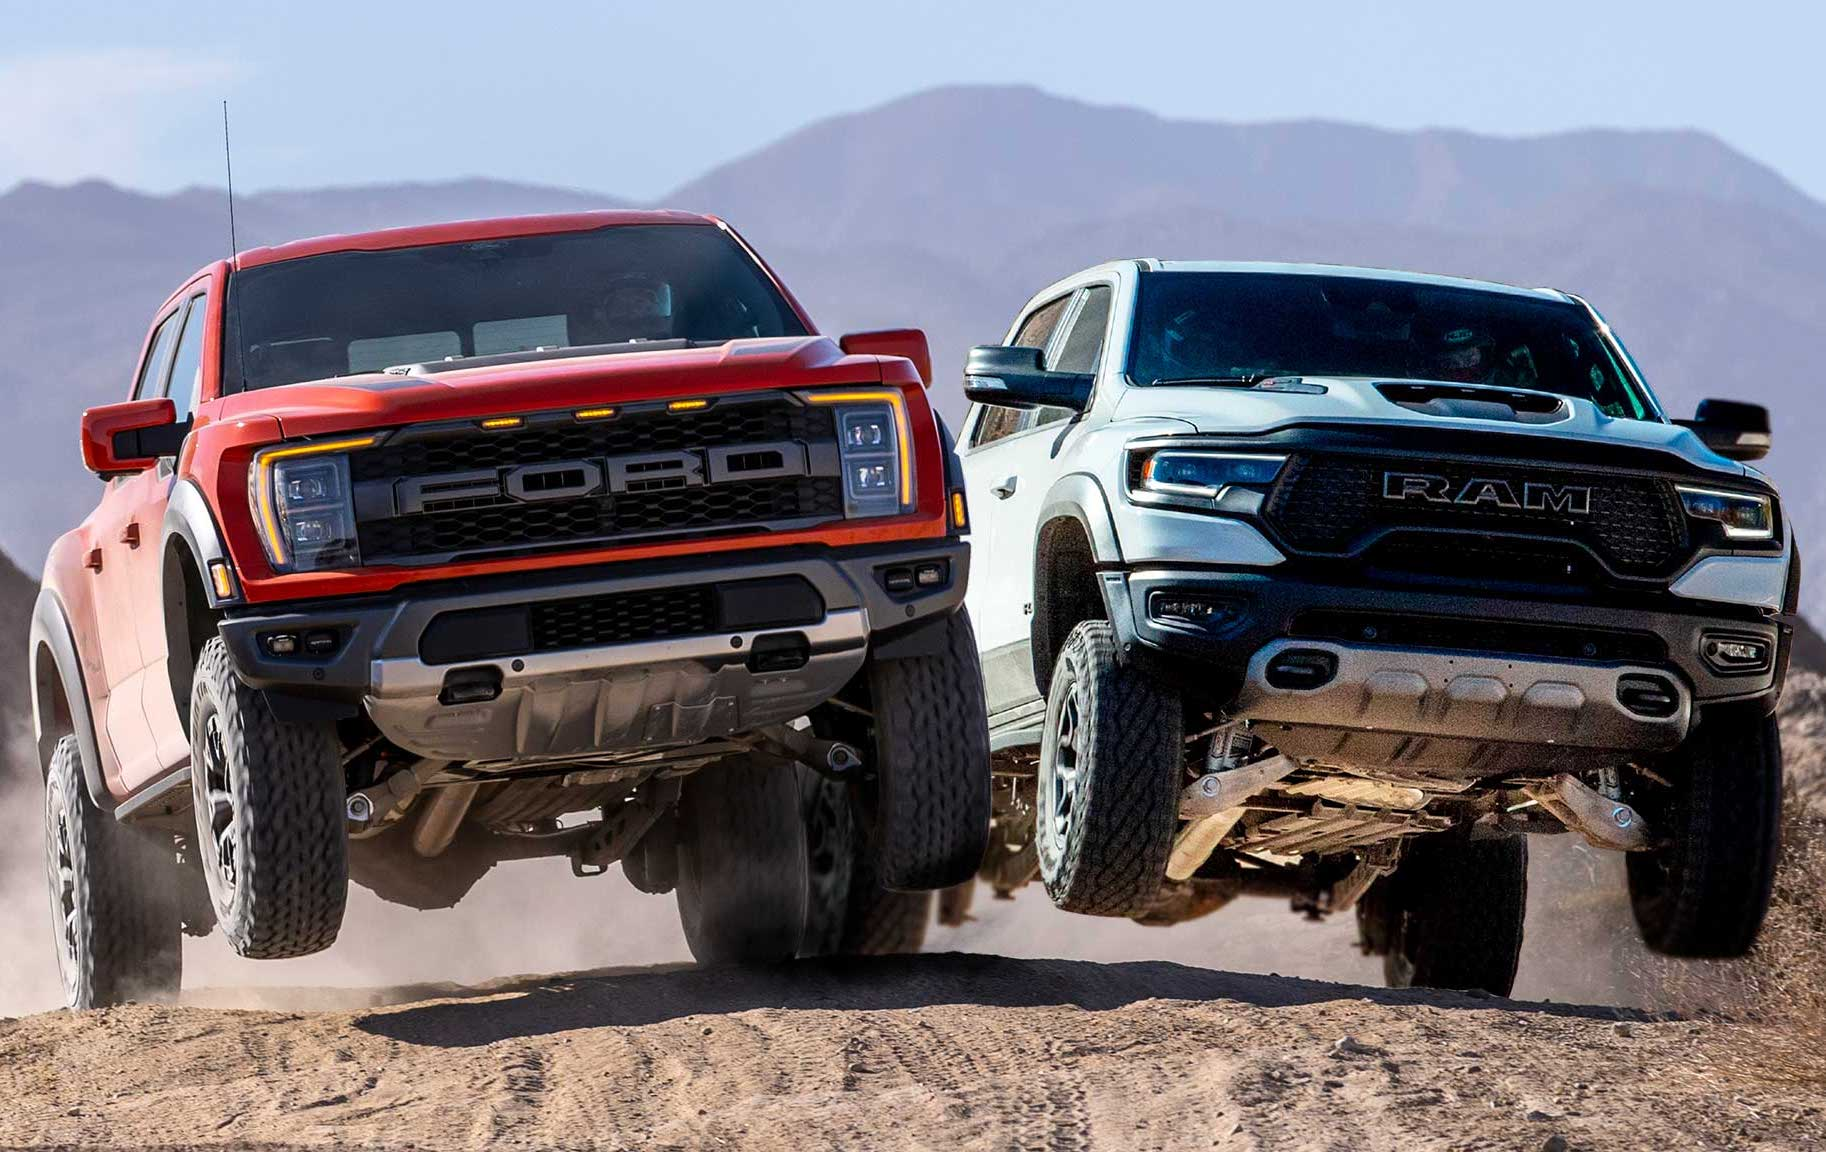 Best 2021 Big Pickups: Ram 1500 tops the list